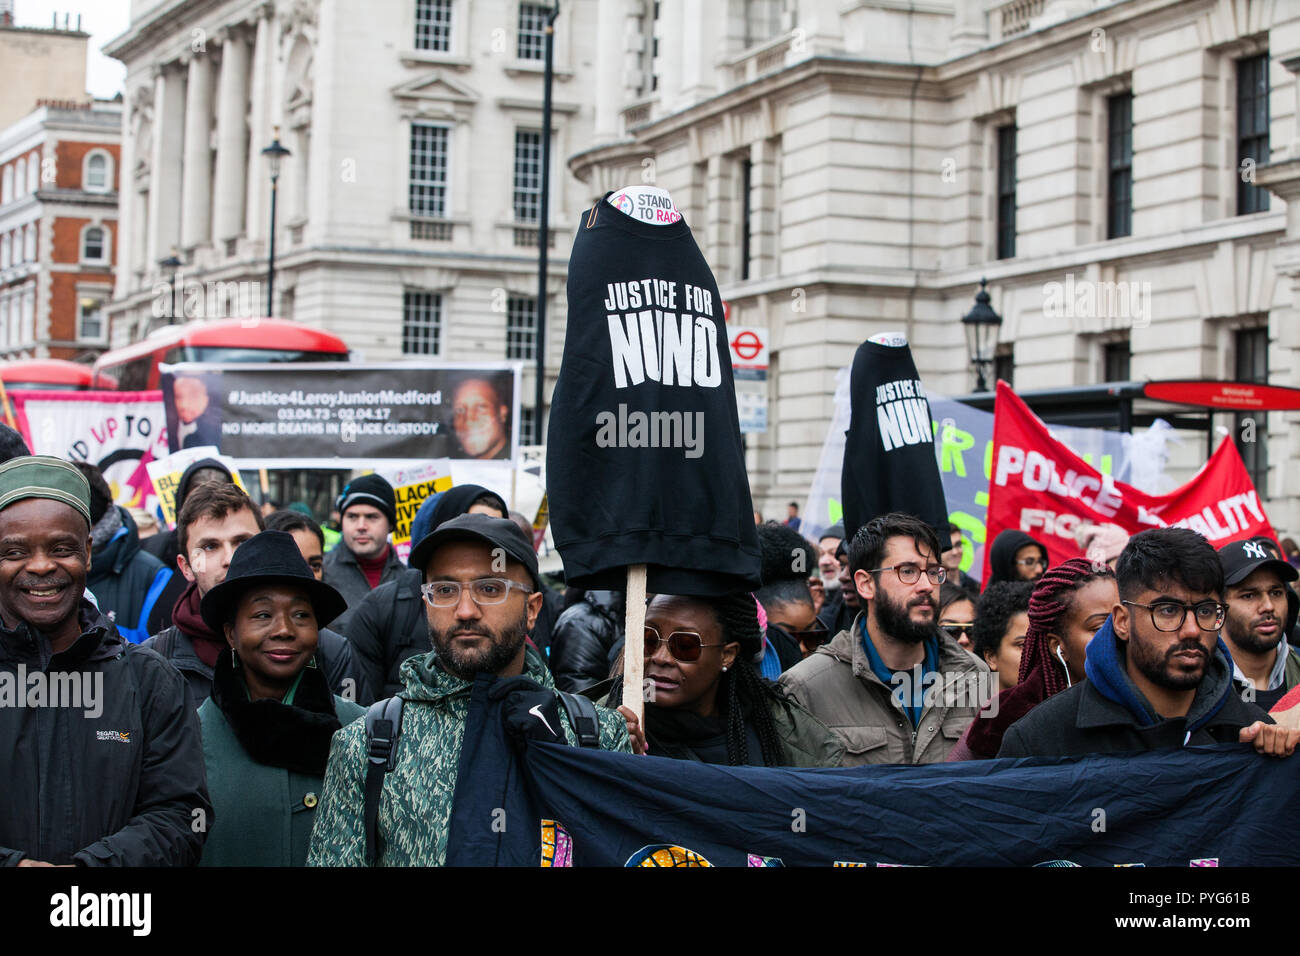 London, UK. 27th October, 2018. Supporters of the Justice for Nuno Cardoso campaign join campaigners from United Families and Friends Campaign (UFFC) taking part in the 20th annual procession to Downing Street in remembrance of family members and friends who died in police custody, prison, immigration detention or secure psychiatric hospitals. Credit: Mark Kerrison/Alamy Live News - Stock Image